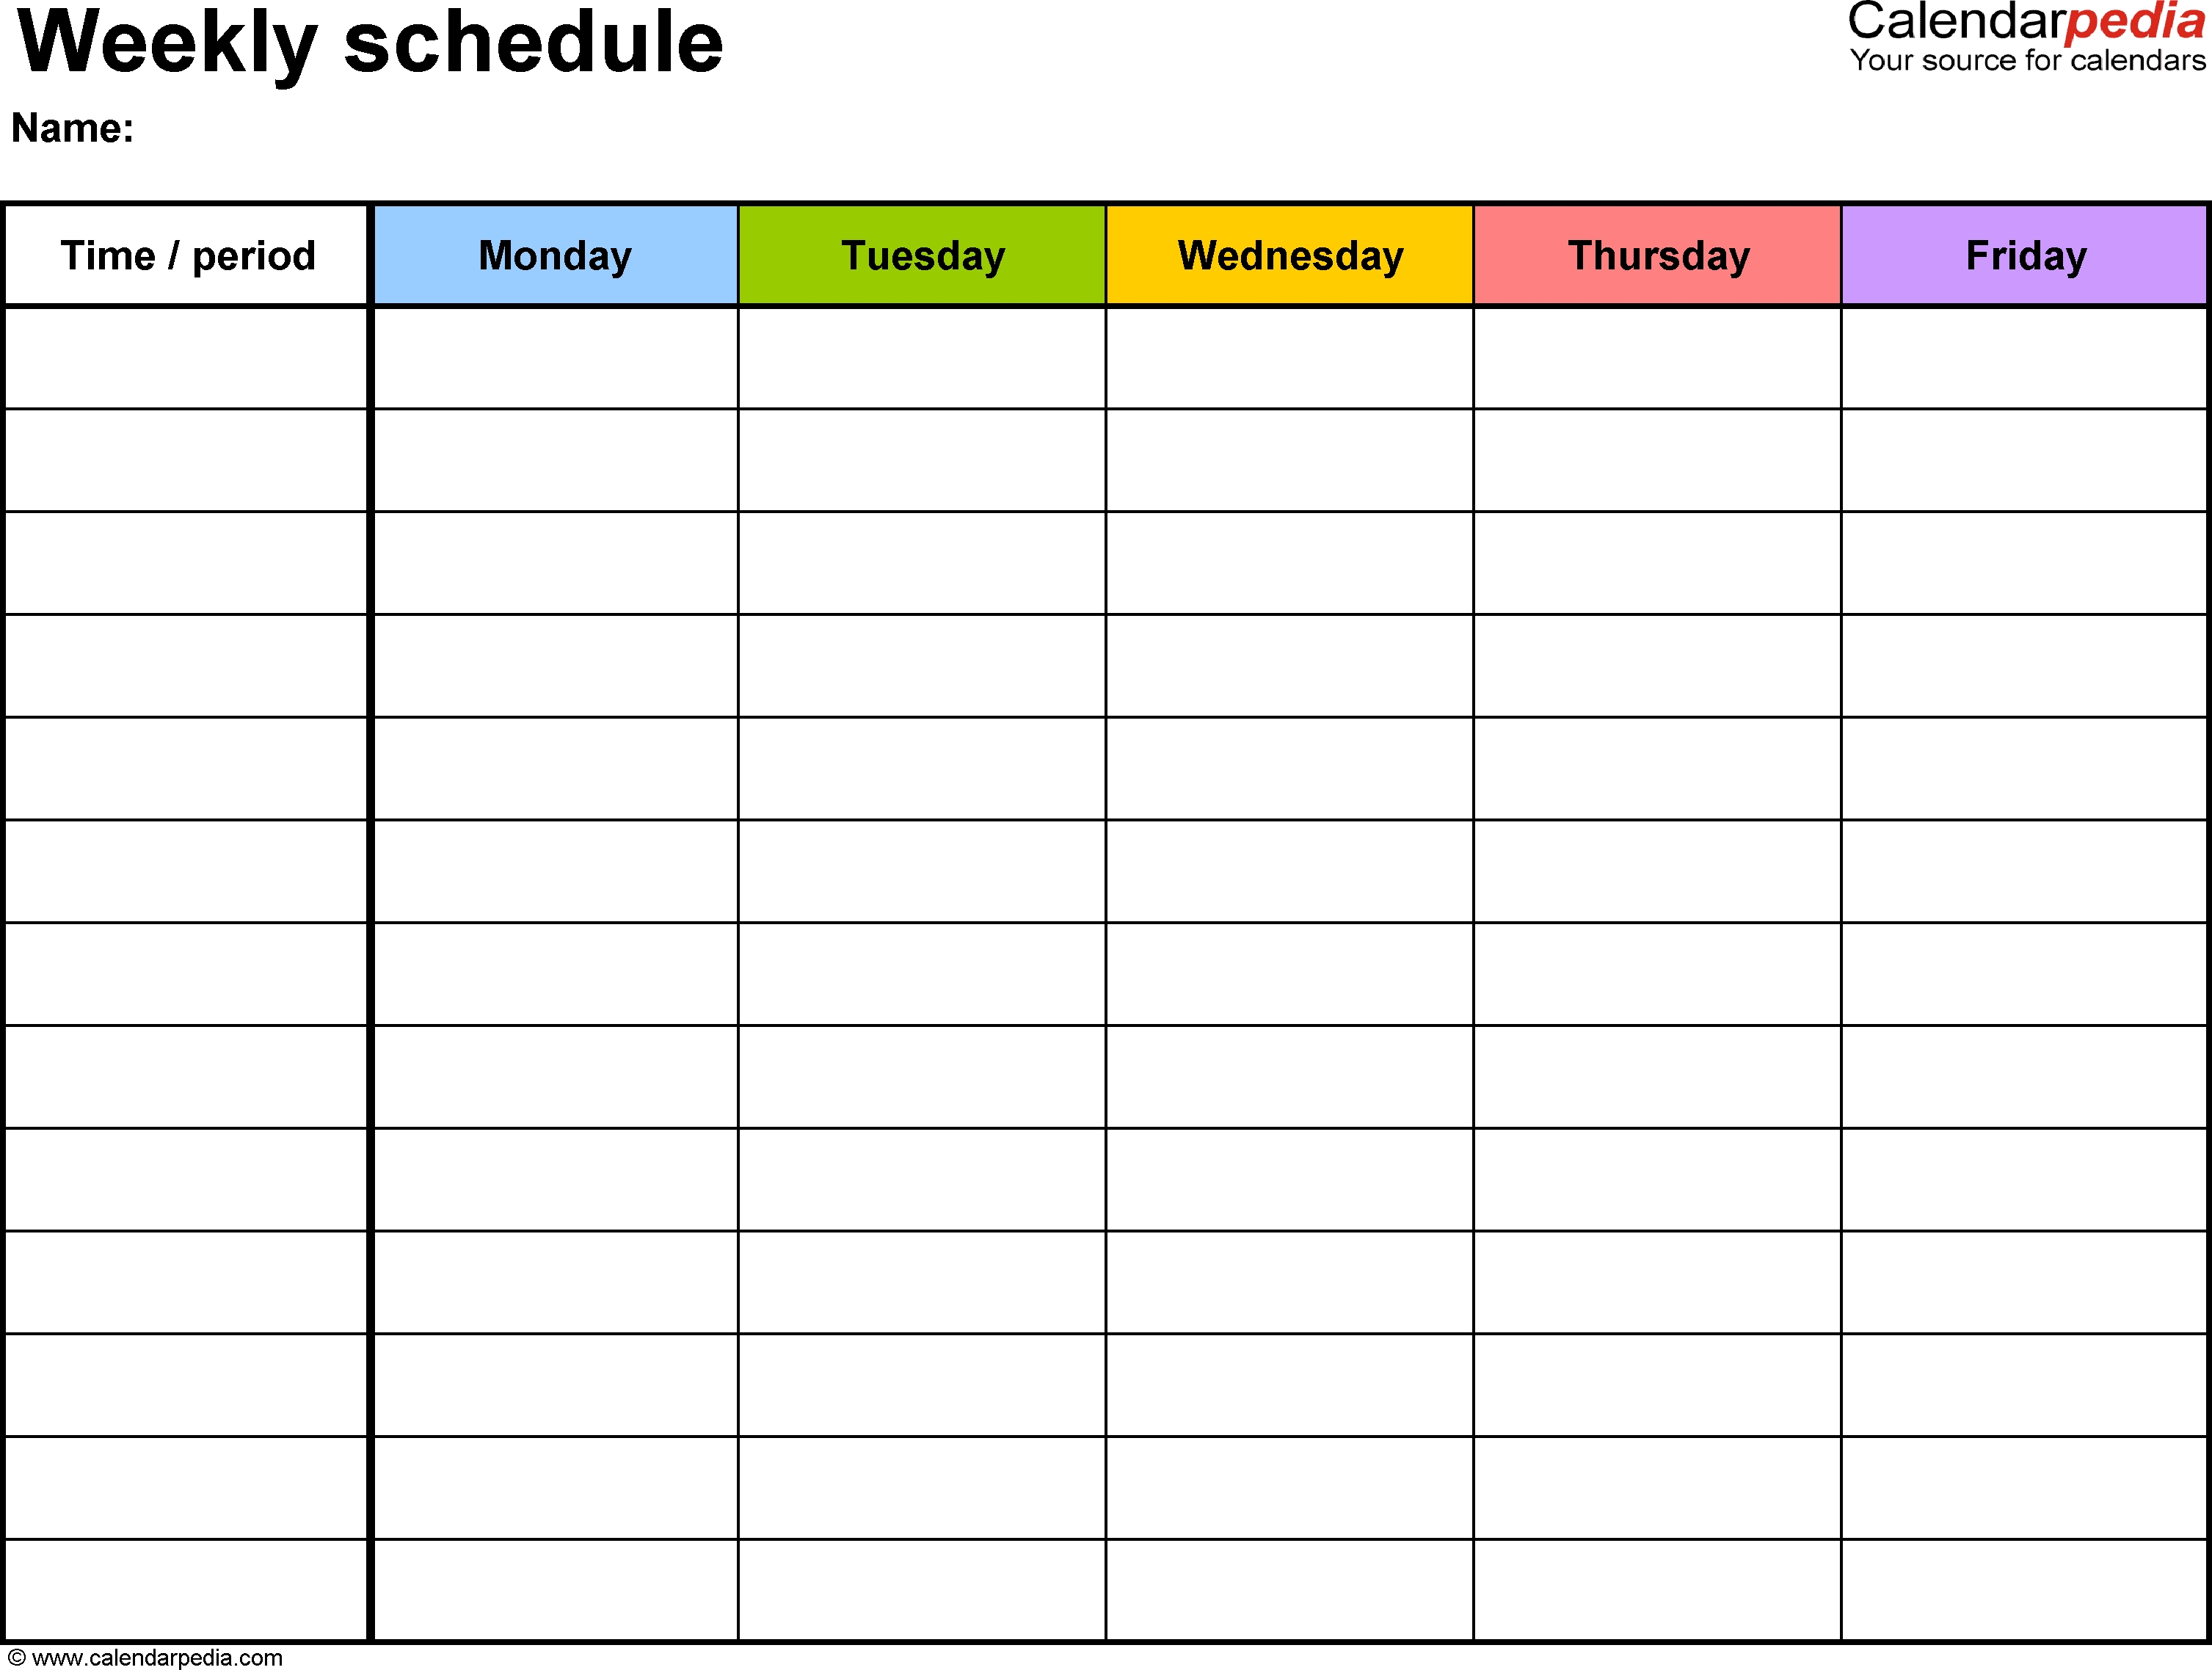 Free Weekly Schedule Templates For Word - 18 Templates intended for Printable Weekly Schedule Monday Through Friday